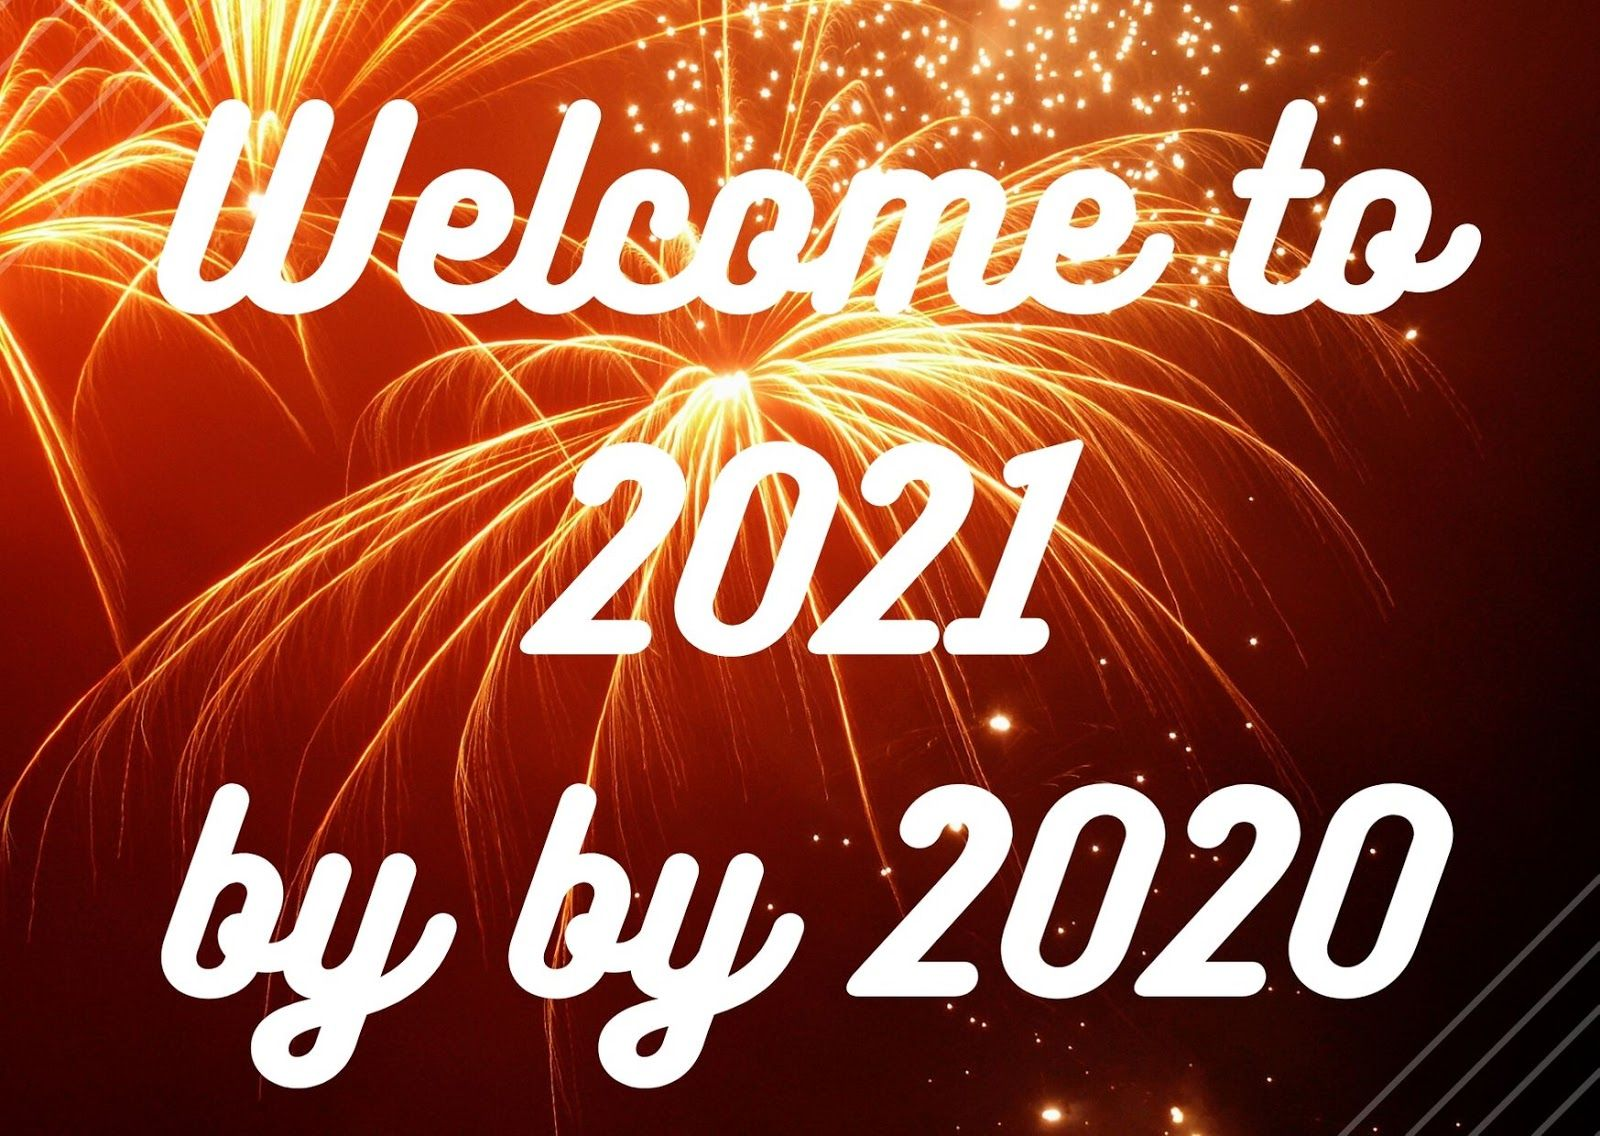 Goodbye 2020 Welcome 2021 HD Wallpaper